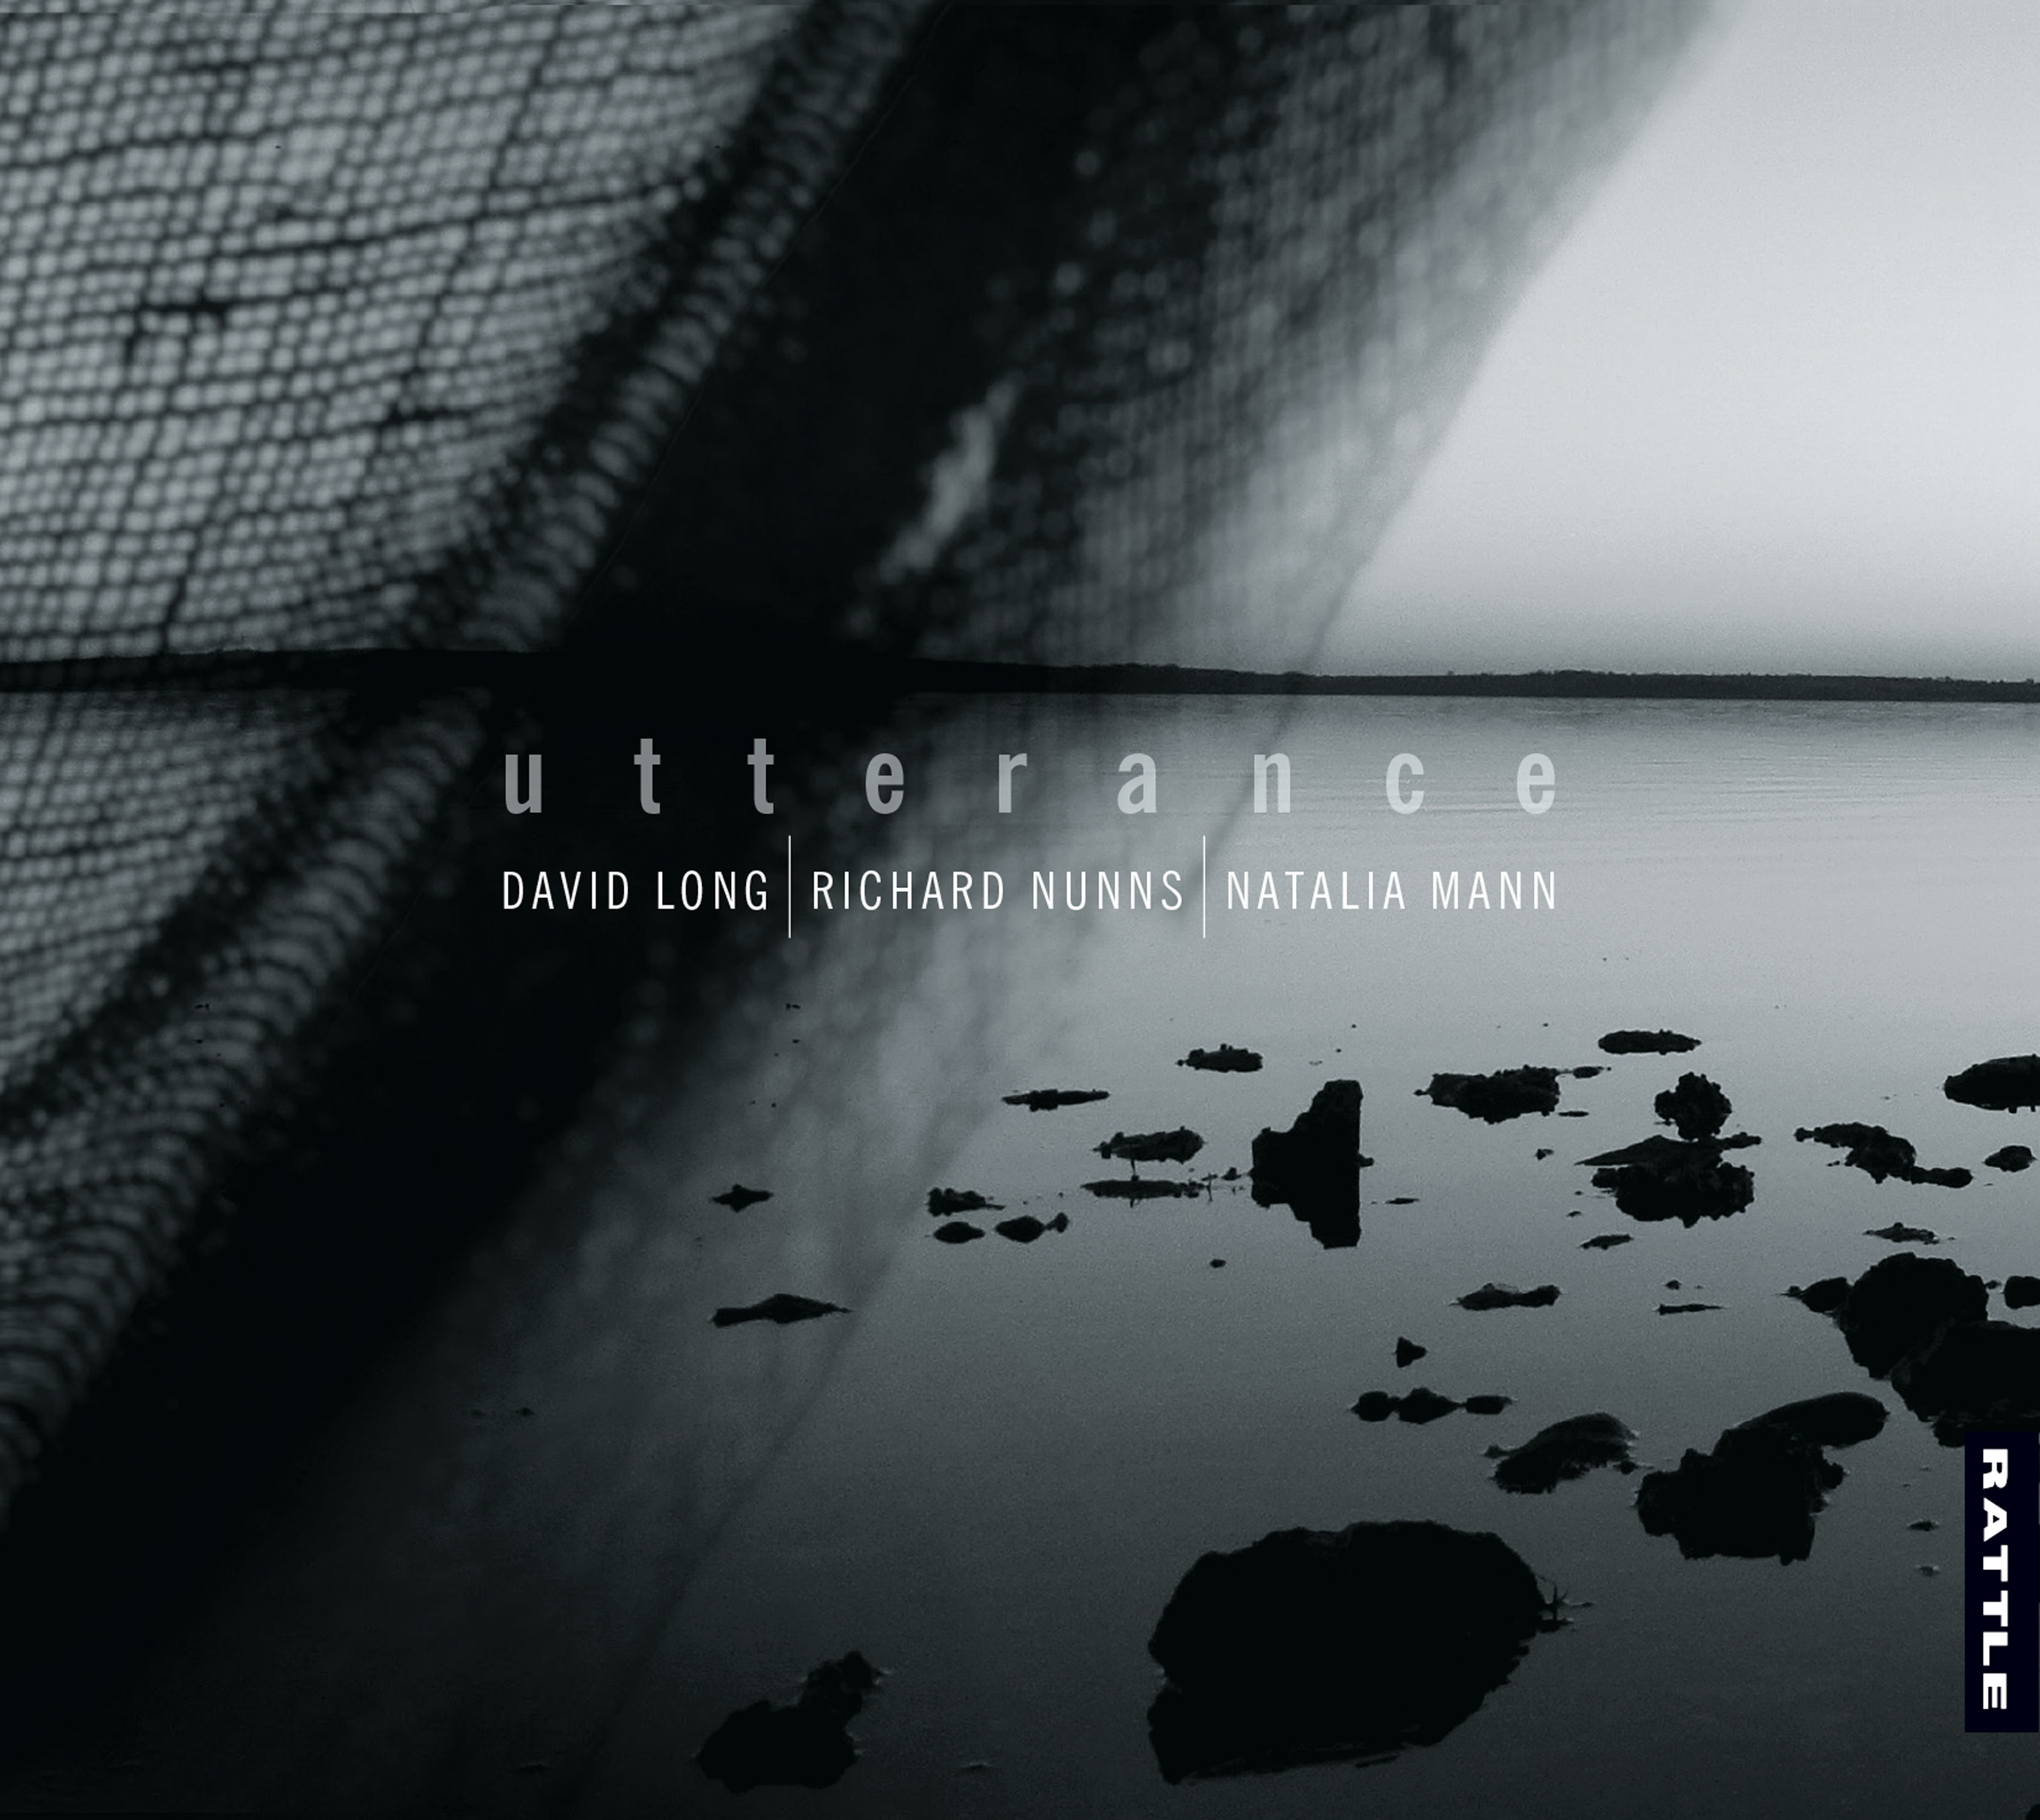 David Long, Richard Nunns, Natalia Mann | utterance - downloadable MP3 ALBUM